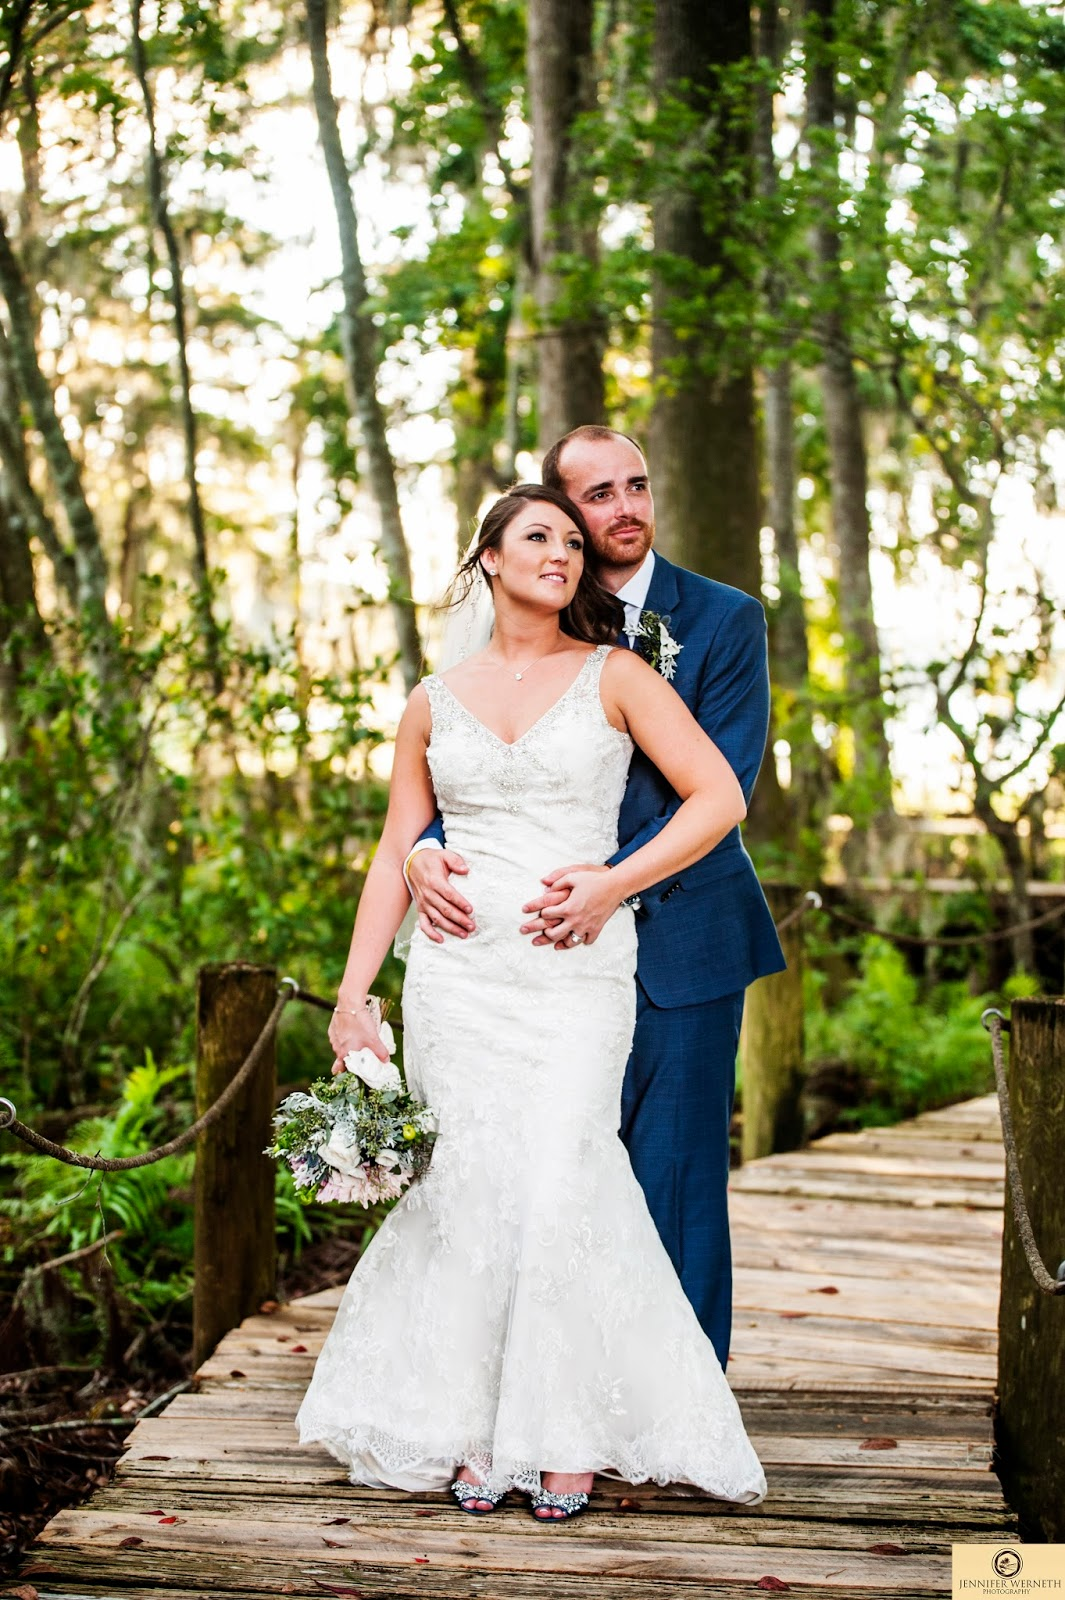 Affordable Wedding Photography Orlando: Wedding Photography Howie In The Hills Marina Del Rey